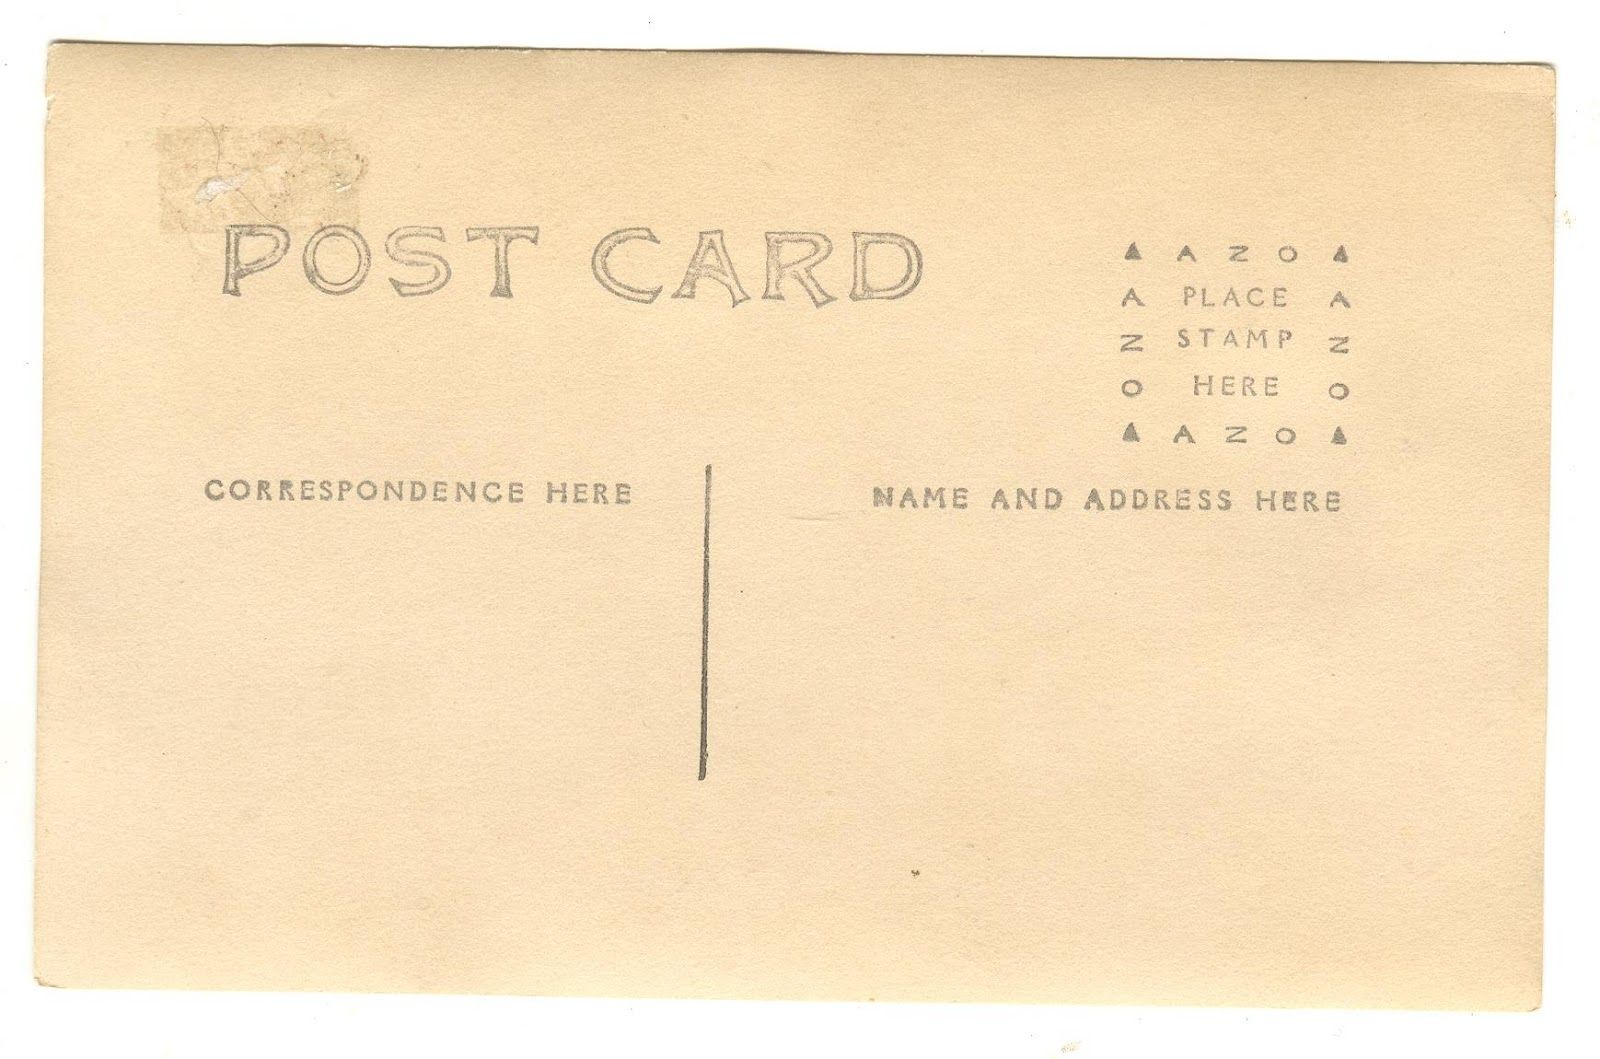 Tips for determining when a U.S. postcard was published